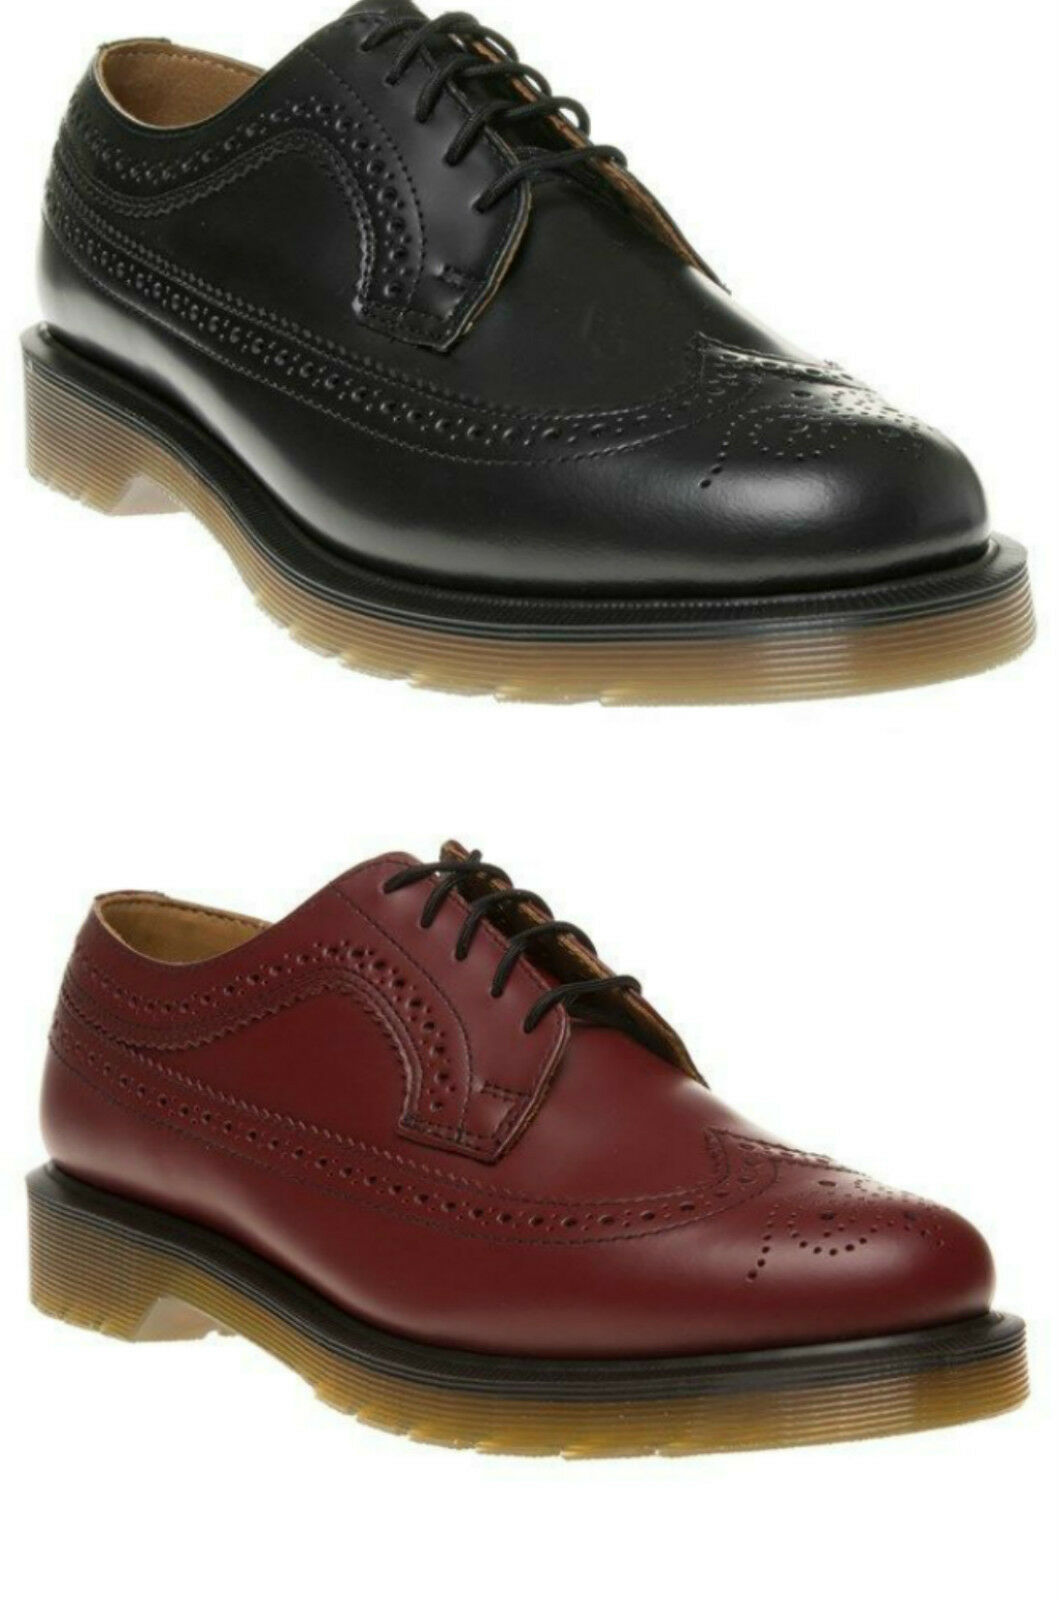 Dr Martens 3989 Brogue Schuhes in Cherry ROT or schwarz